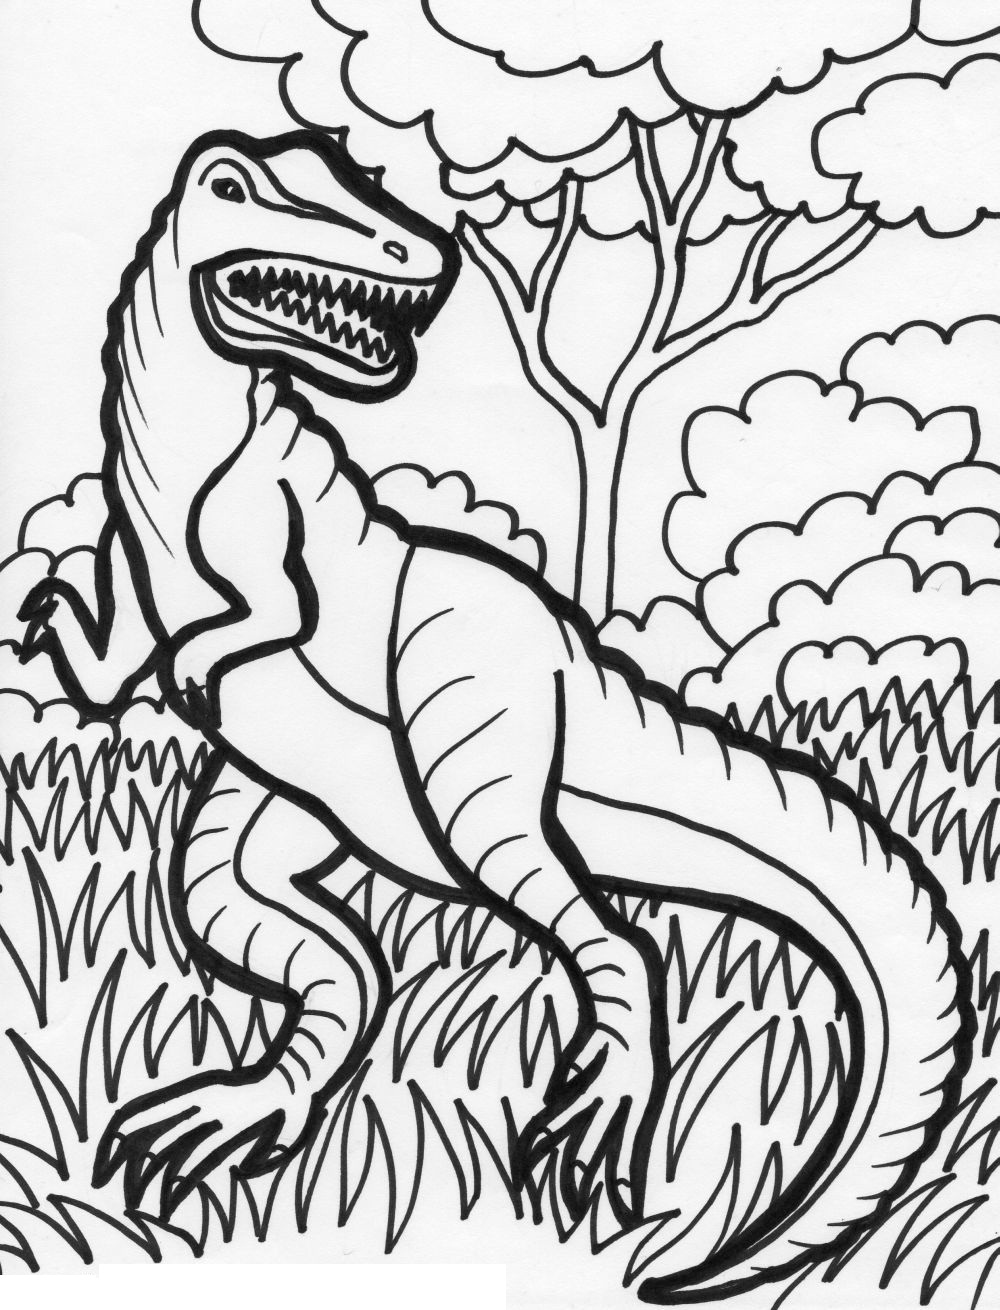 dinosaurs coloring pages printable free printable dinosaur coloring pages for kids coloring printable dinosaurs pages